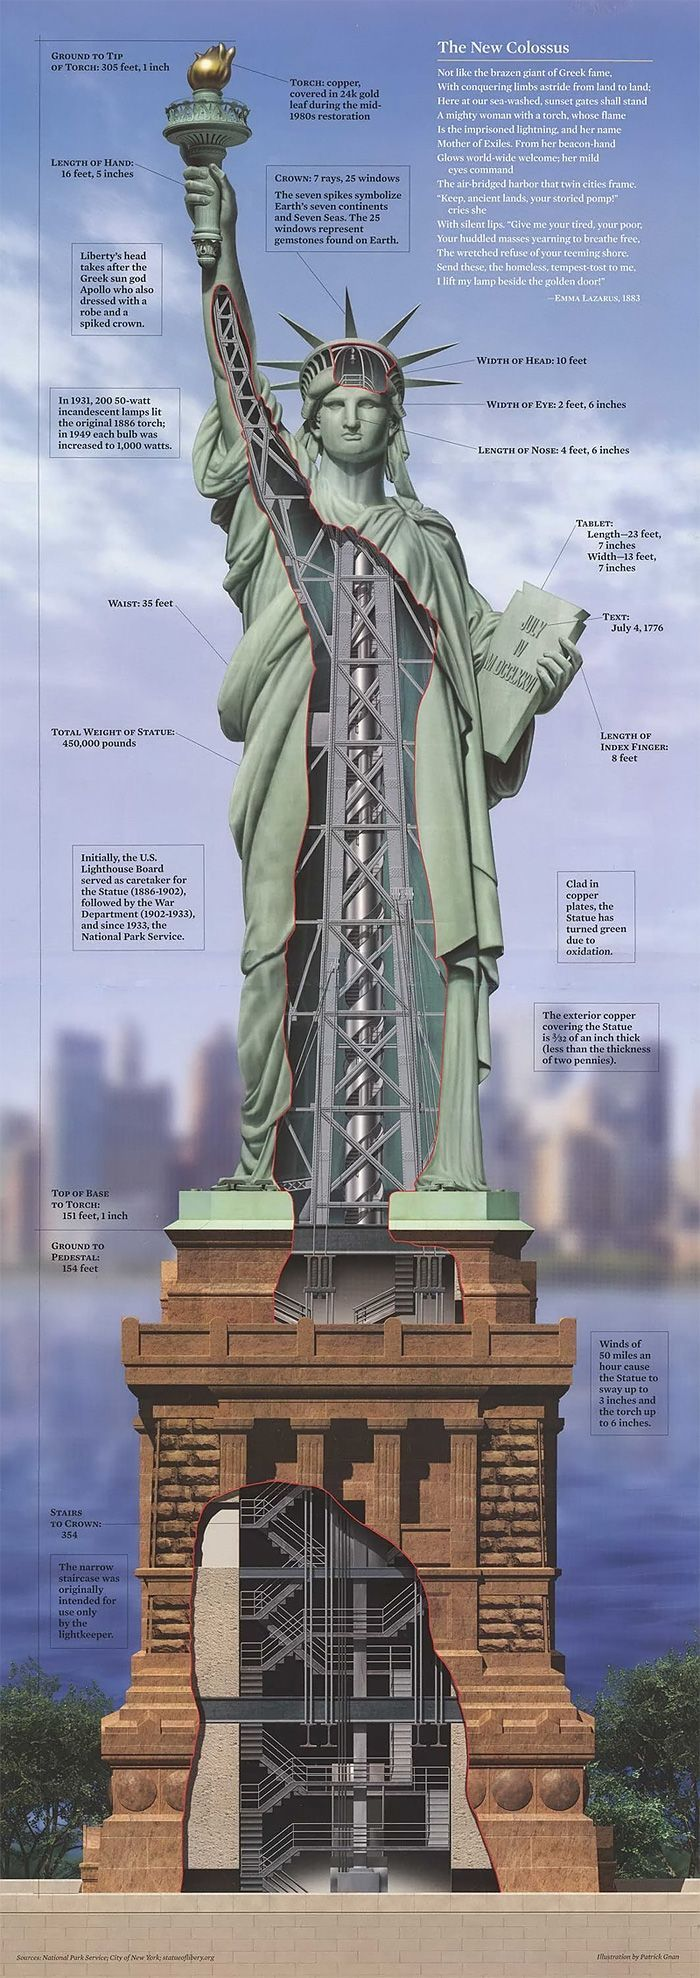 inside the statue of liberty my modern metropolis luxe list new york city pinterest. Black Bedroom Furniture Sets. Home Design Ideas